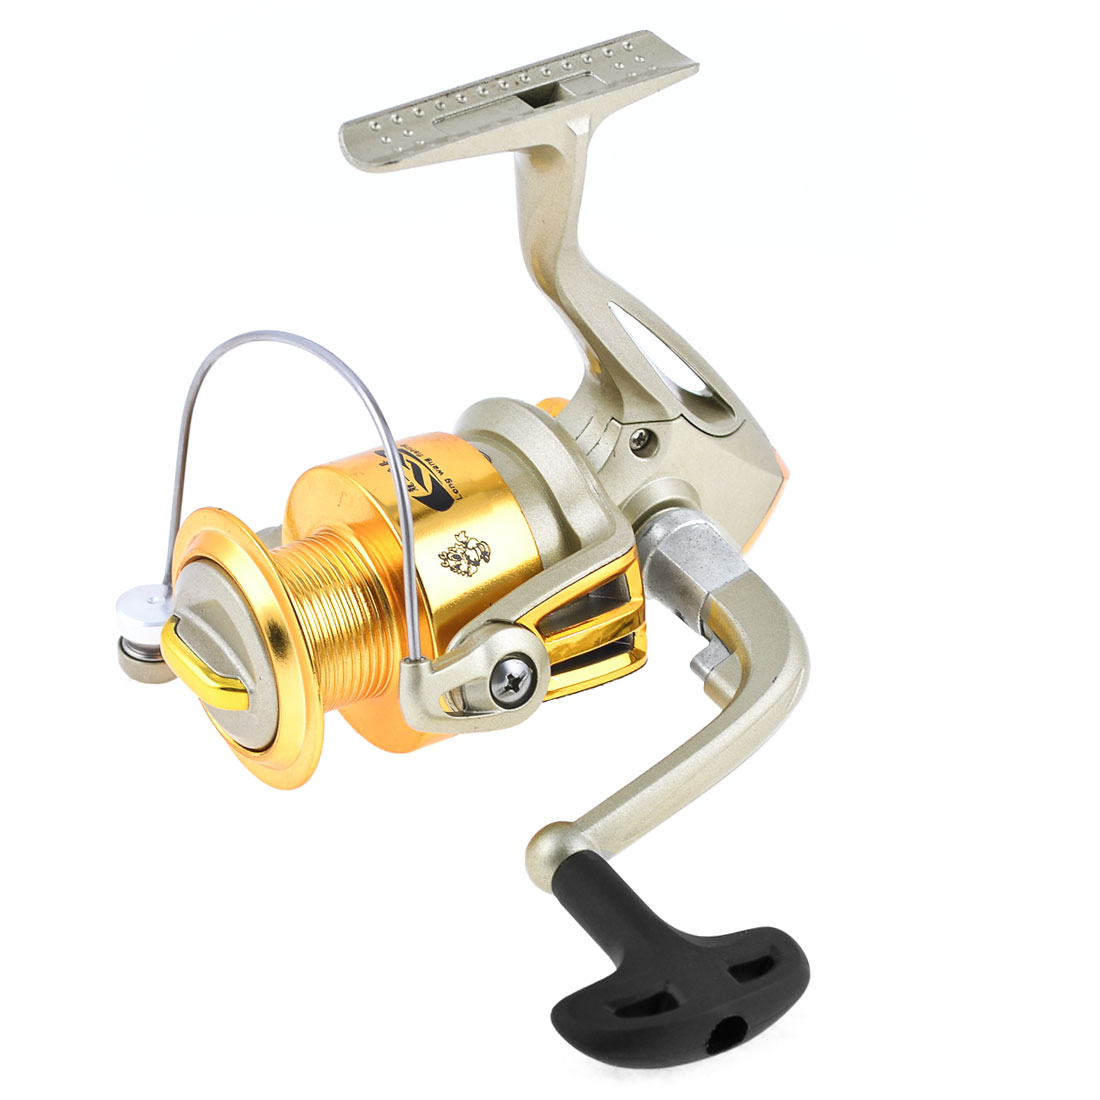 5.5:1 Gear Ratio 5 Ball Bearings Folding Fishing Spinning Reel Champagne Gold Tone